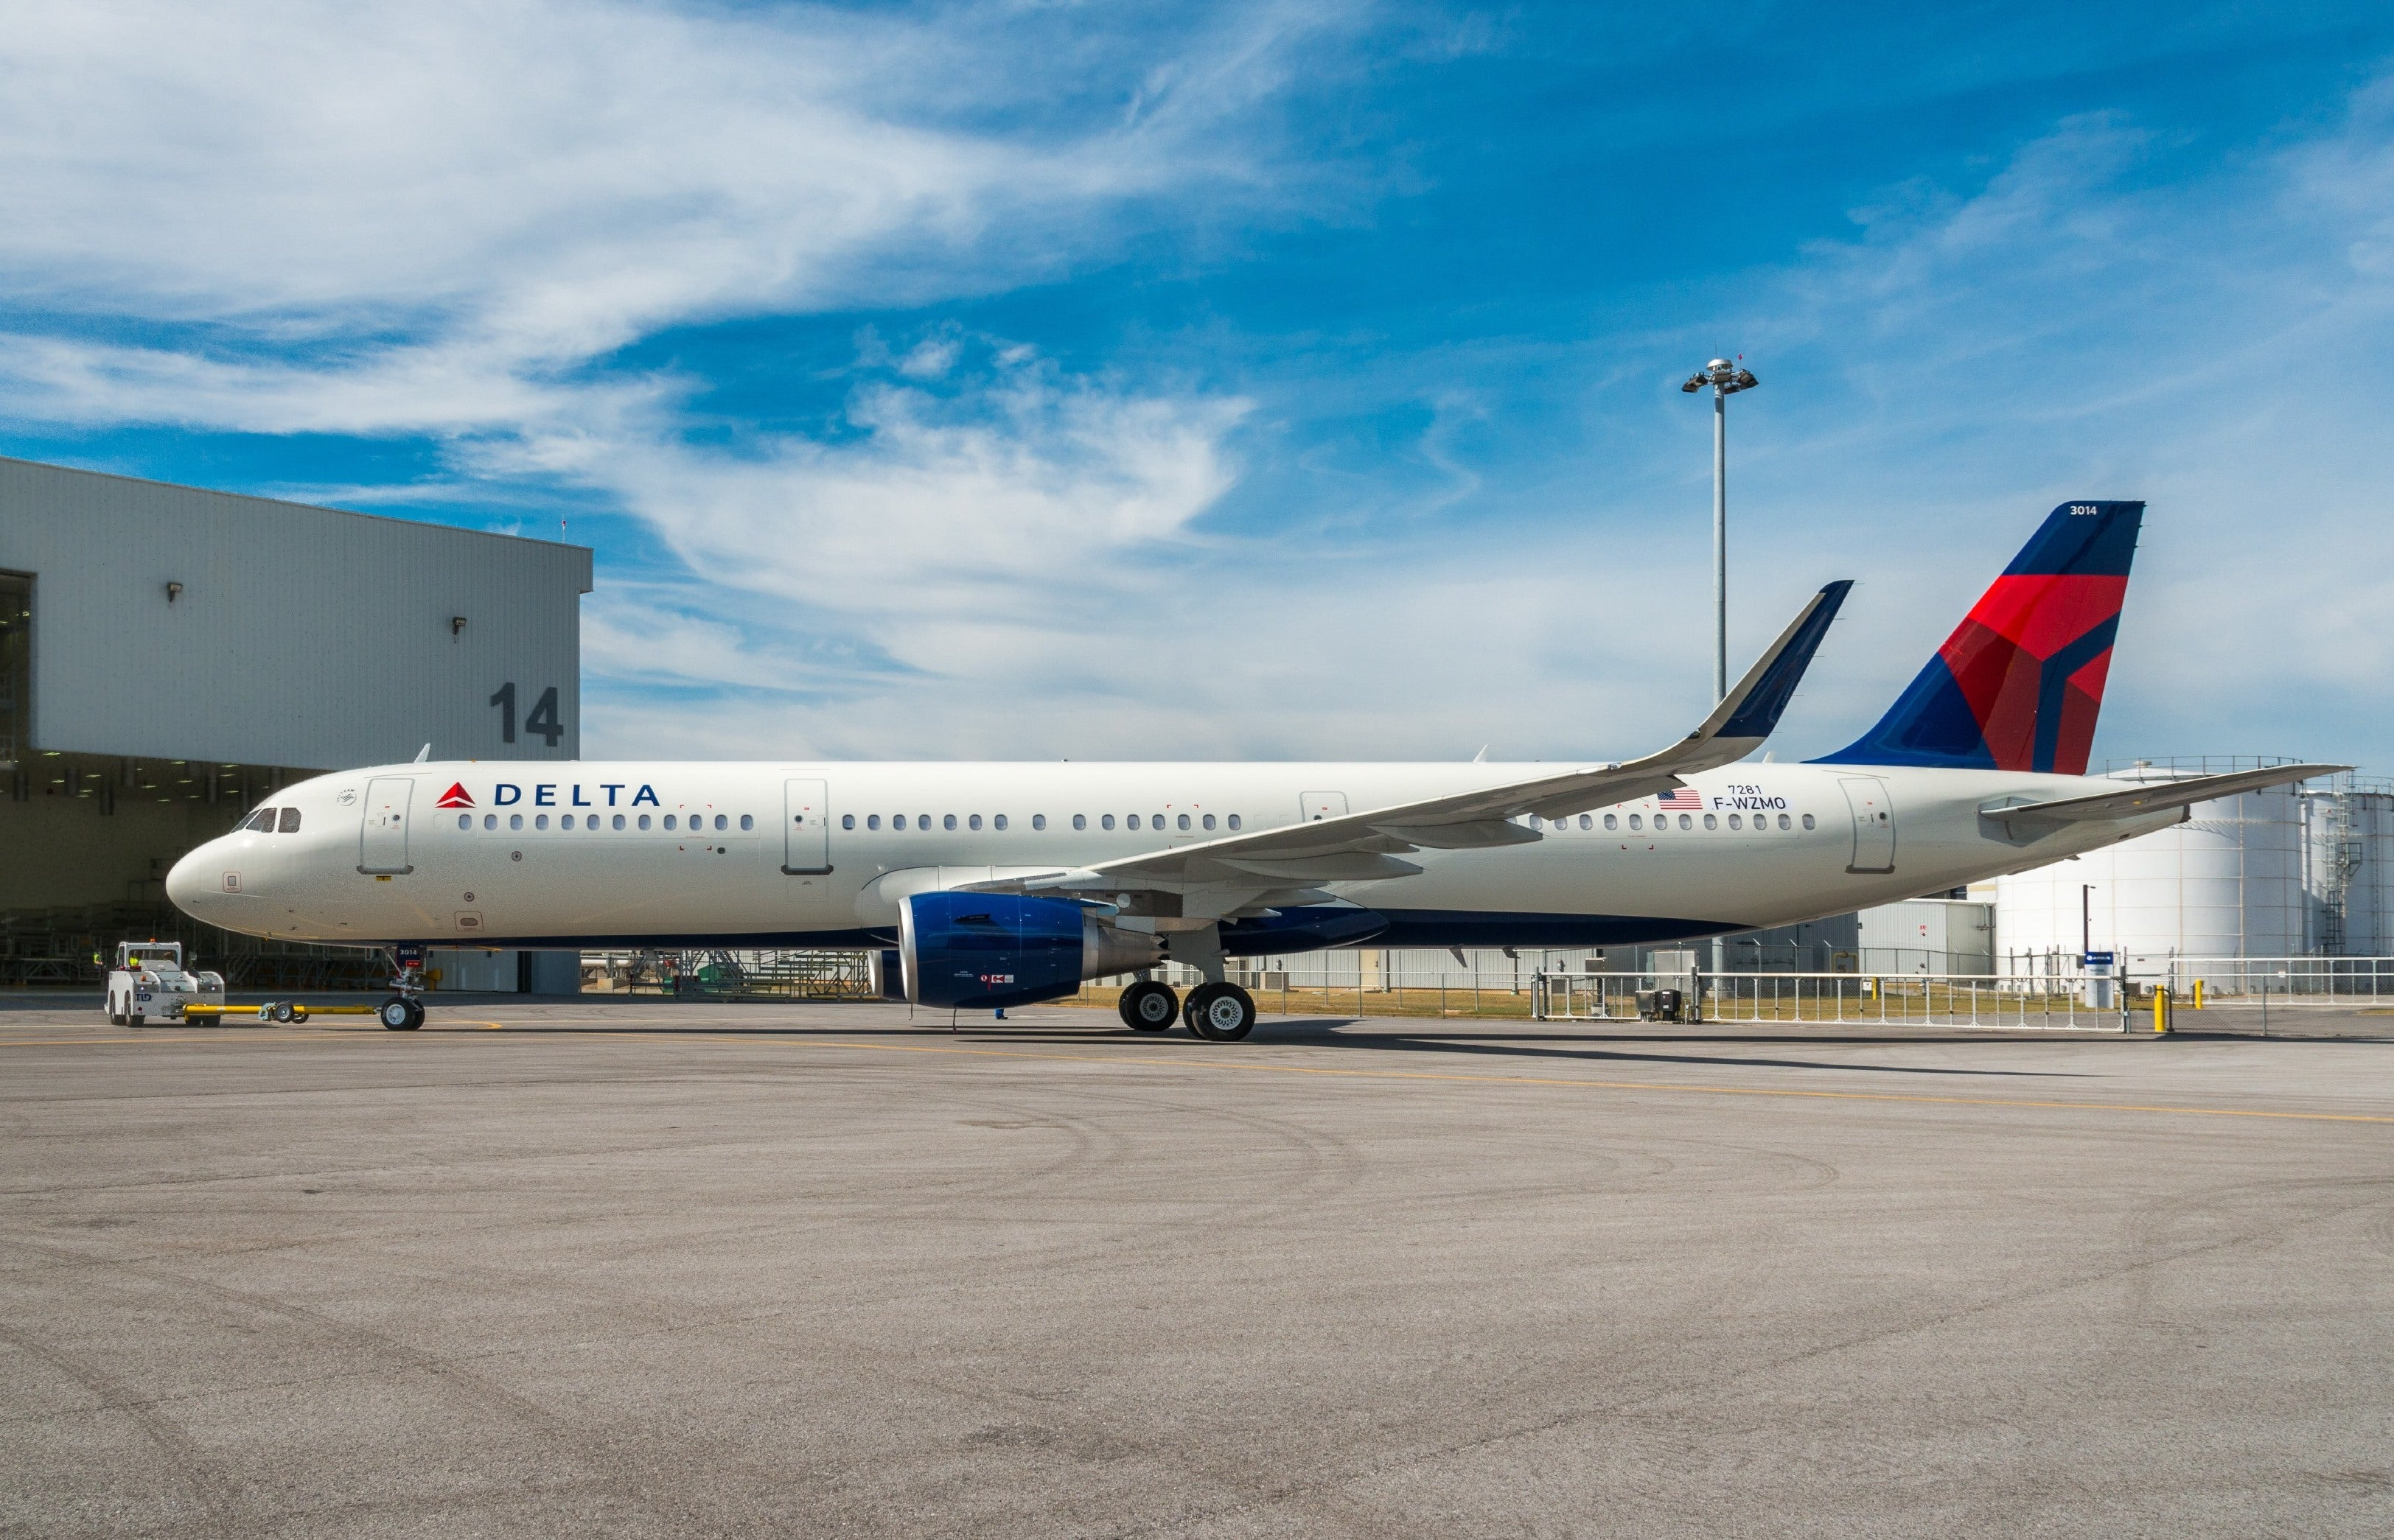 Delta Stays Strong With Solid Guidance Update The Motley